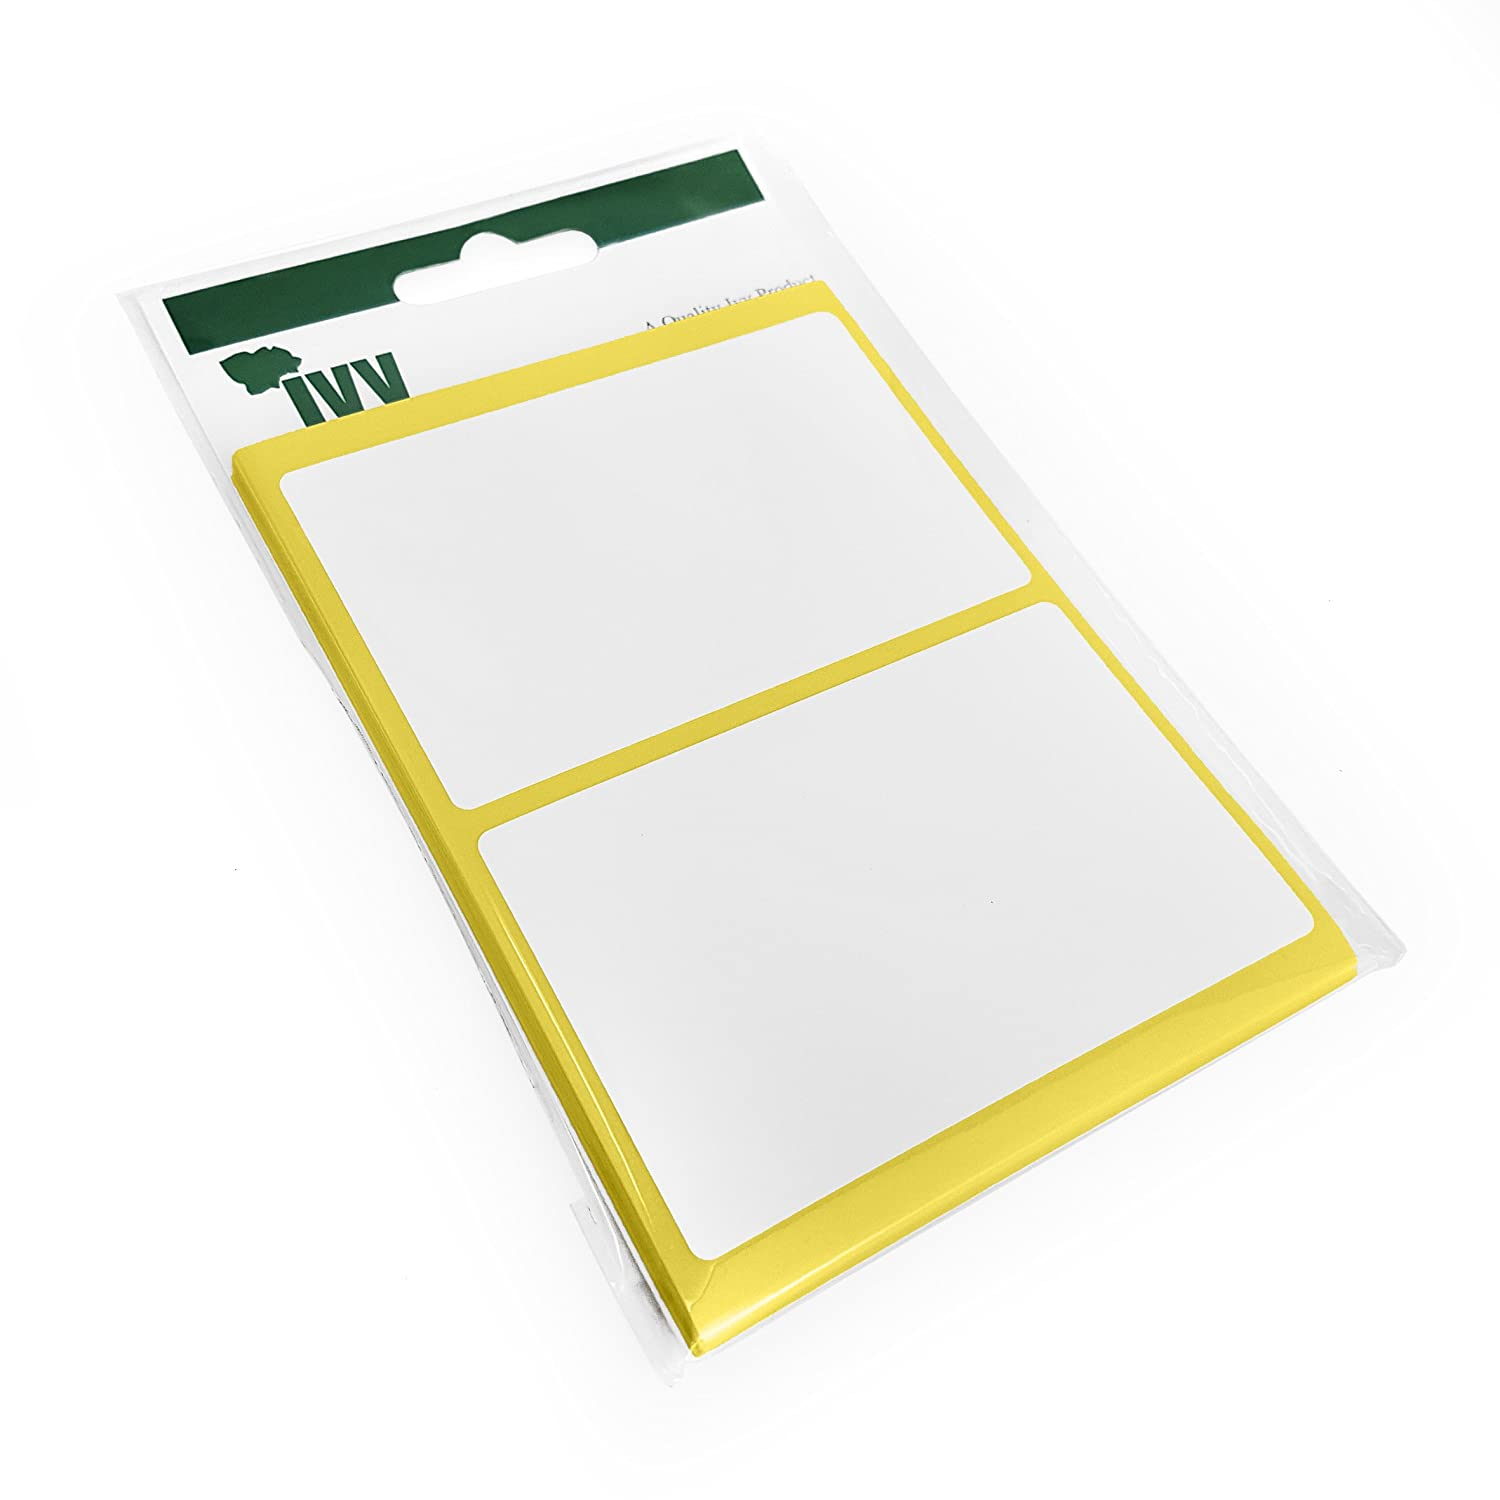 9 x 13mm Stickers 1,350 Self Adhesive Sticky White Labels Ivy Stationery